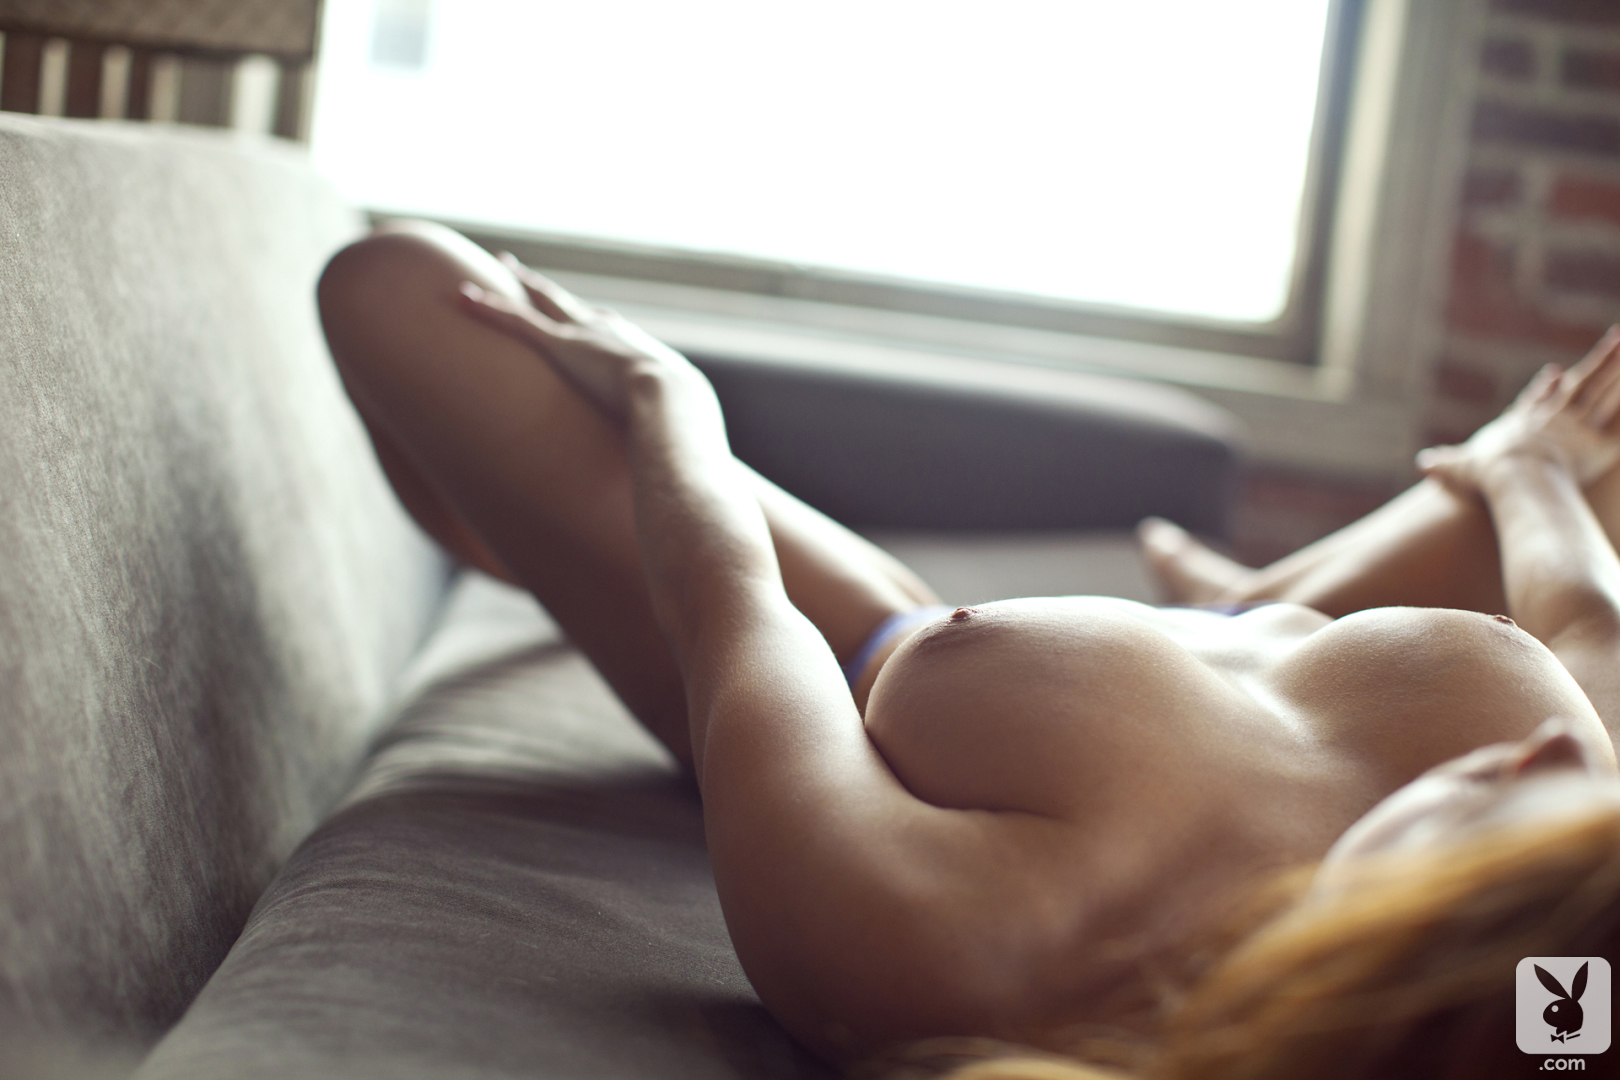 leanna decker nude pictures. rating = 9.56/10